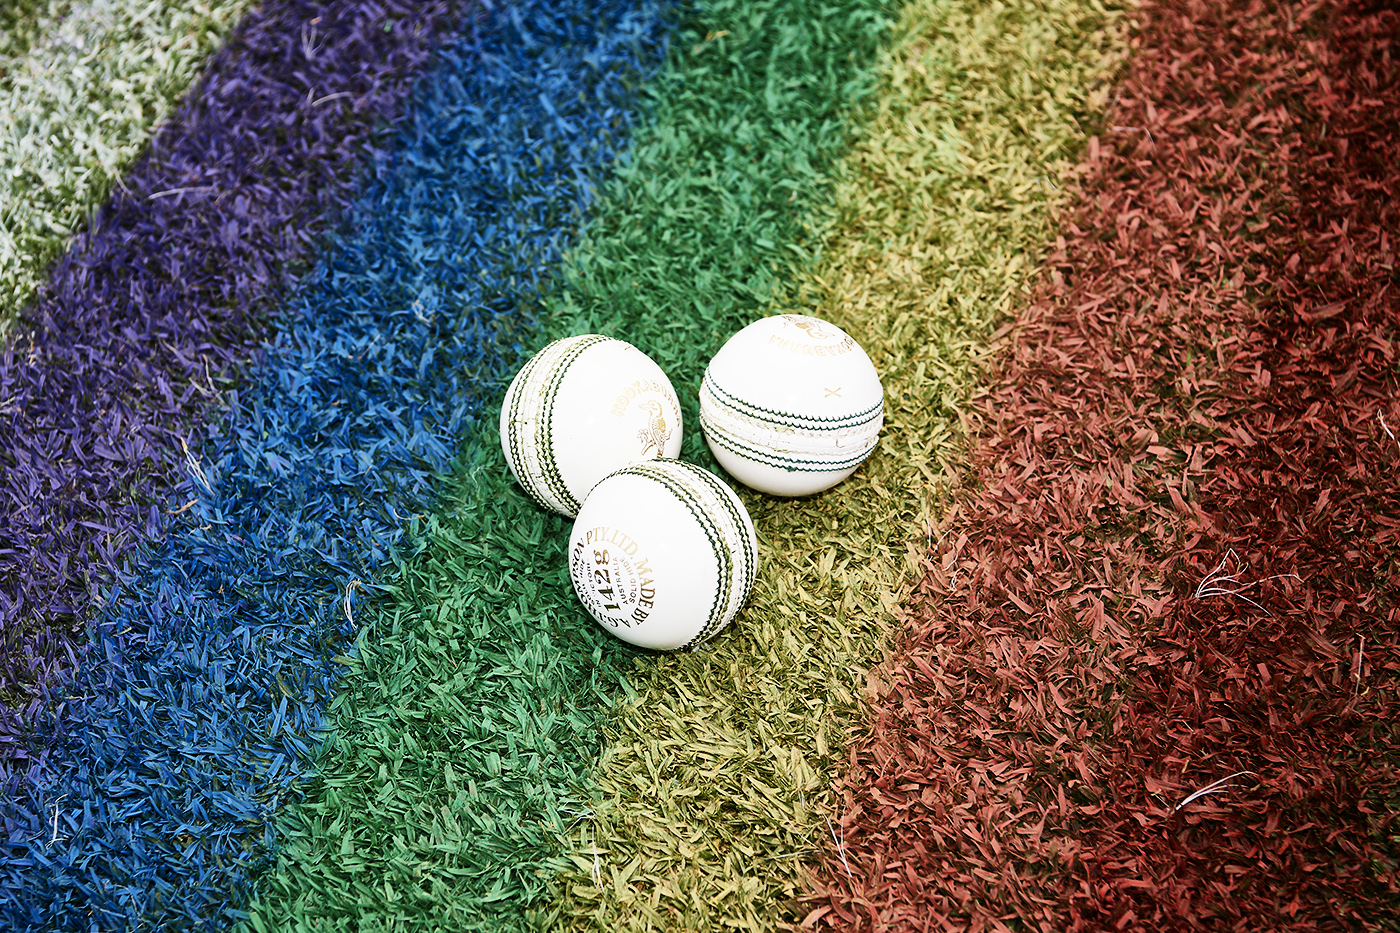 Women's cricket has been a relatively inclusive space in terms of sexual orientation for a while now, but men's cricket hasn't shown many signs of getting there